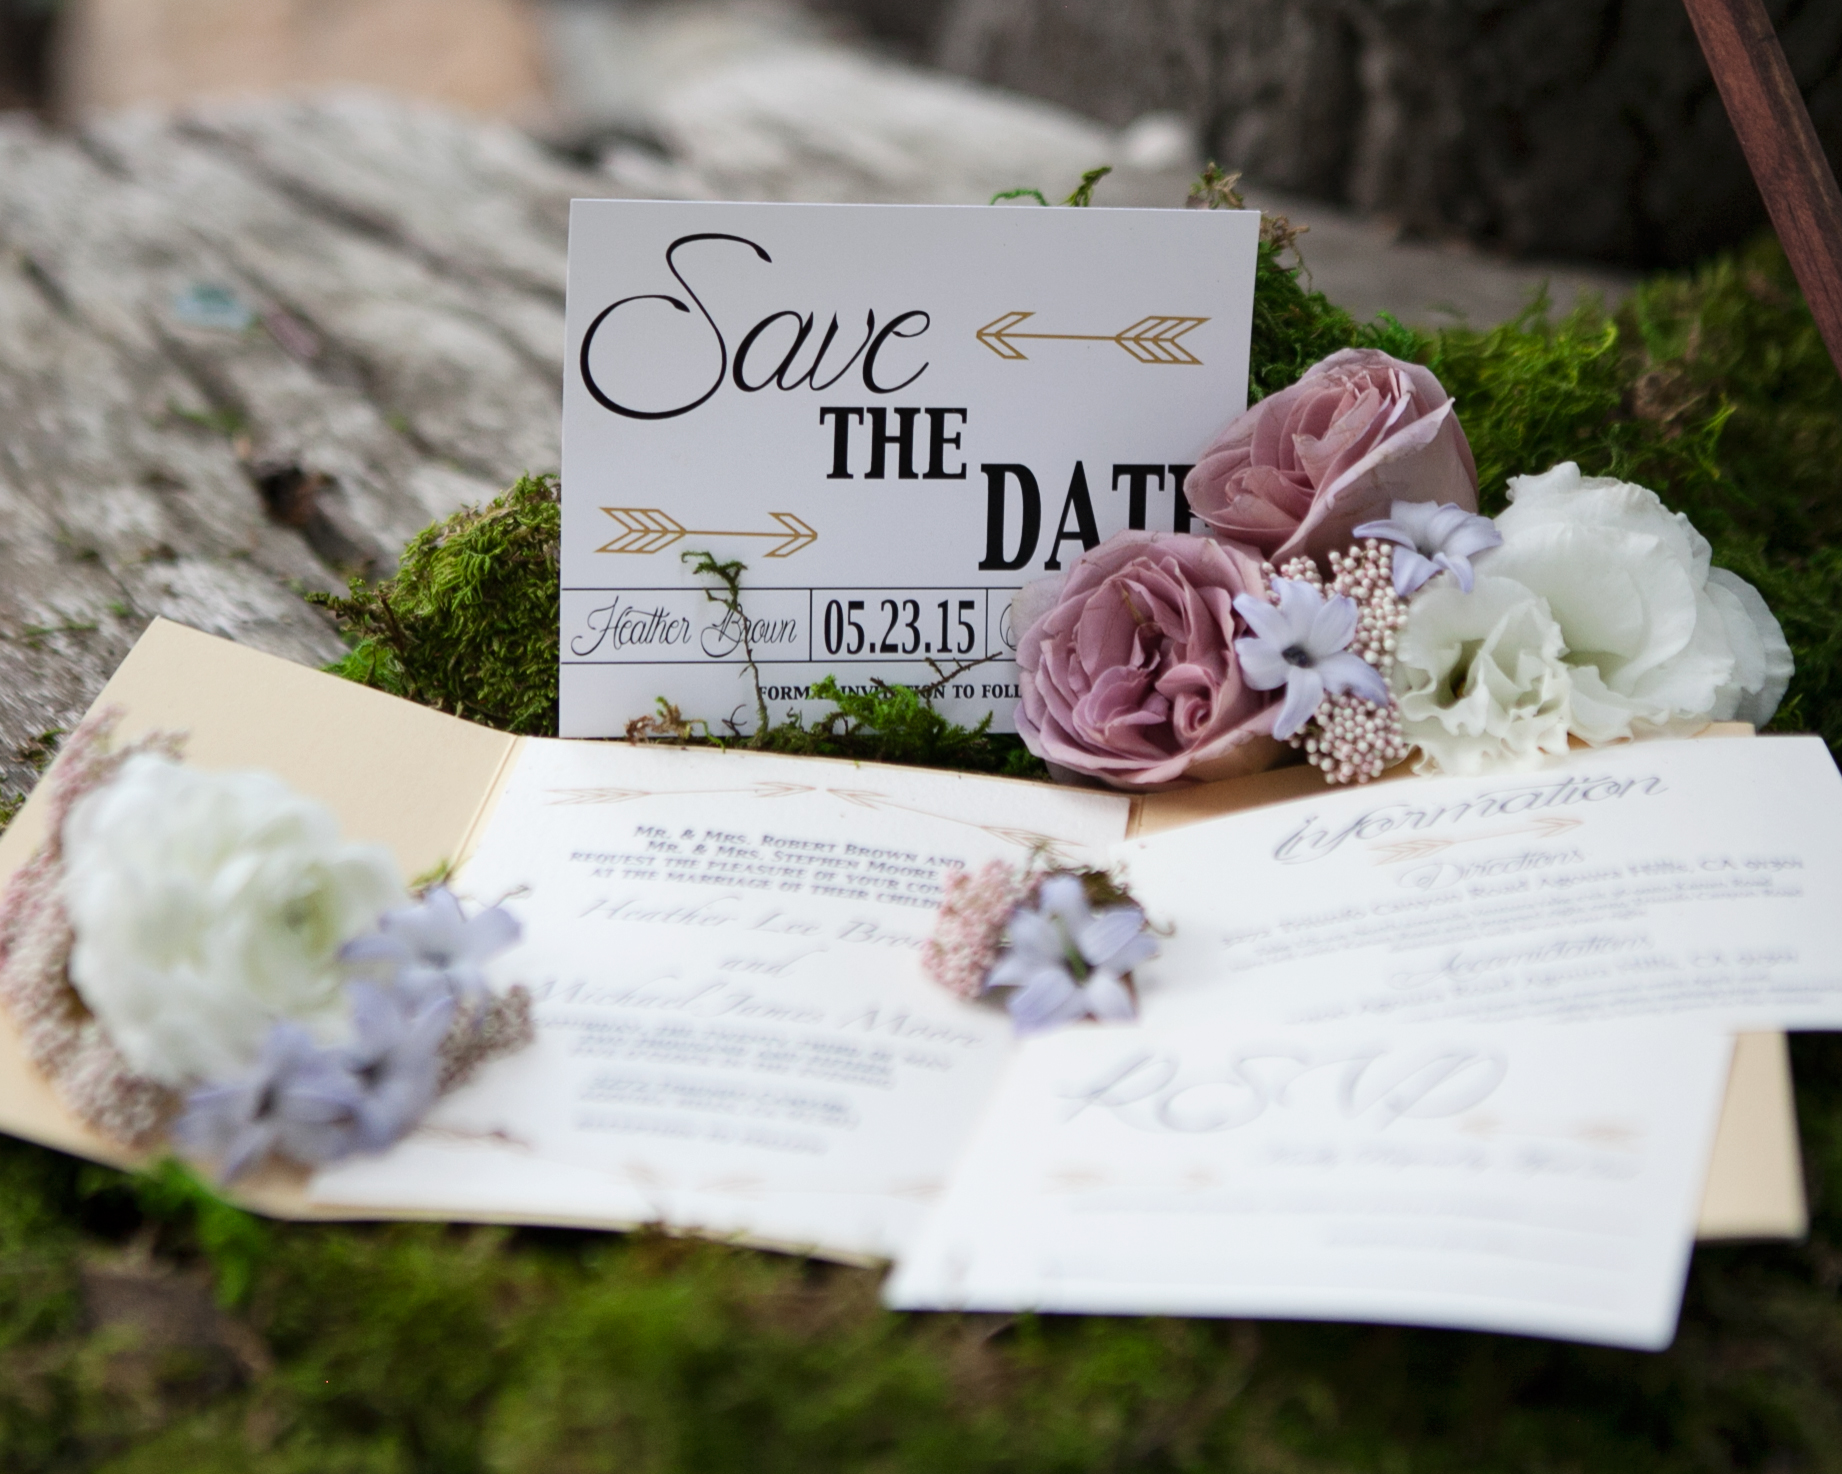 Rustic Wedding Invitations with Natural, Whimsical Details - Inside ...